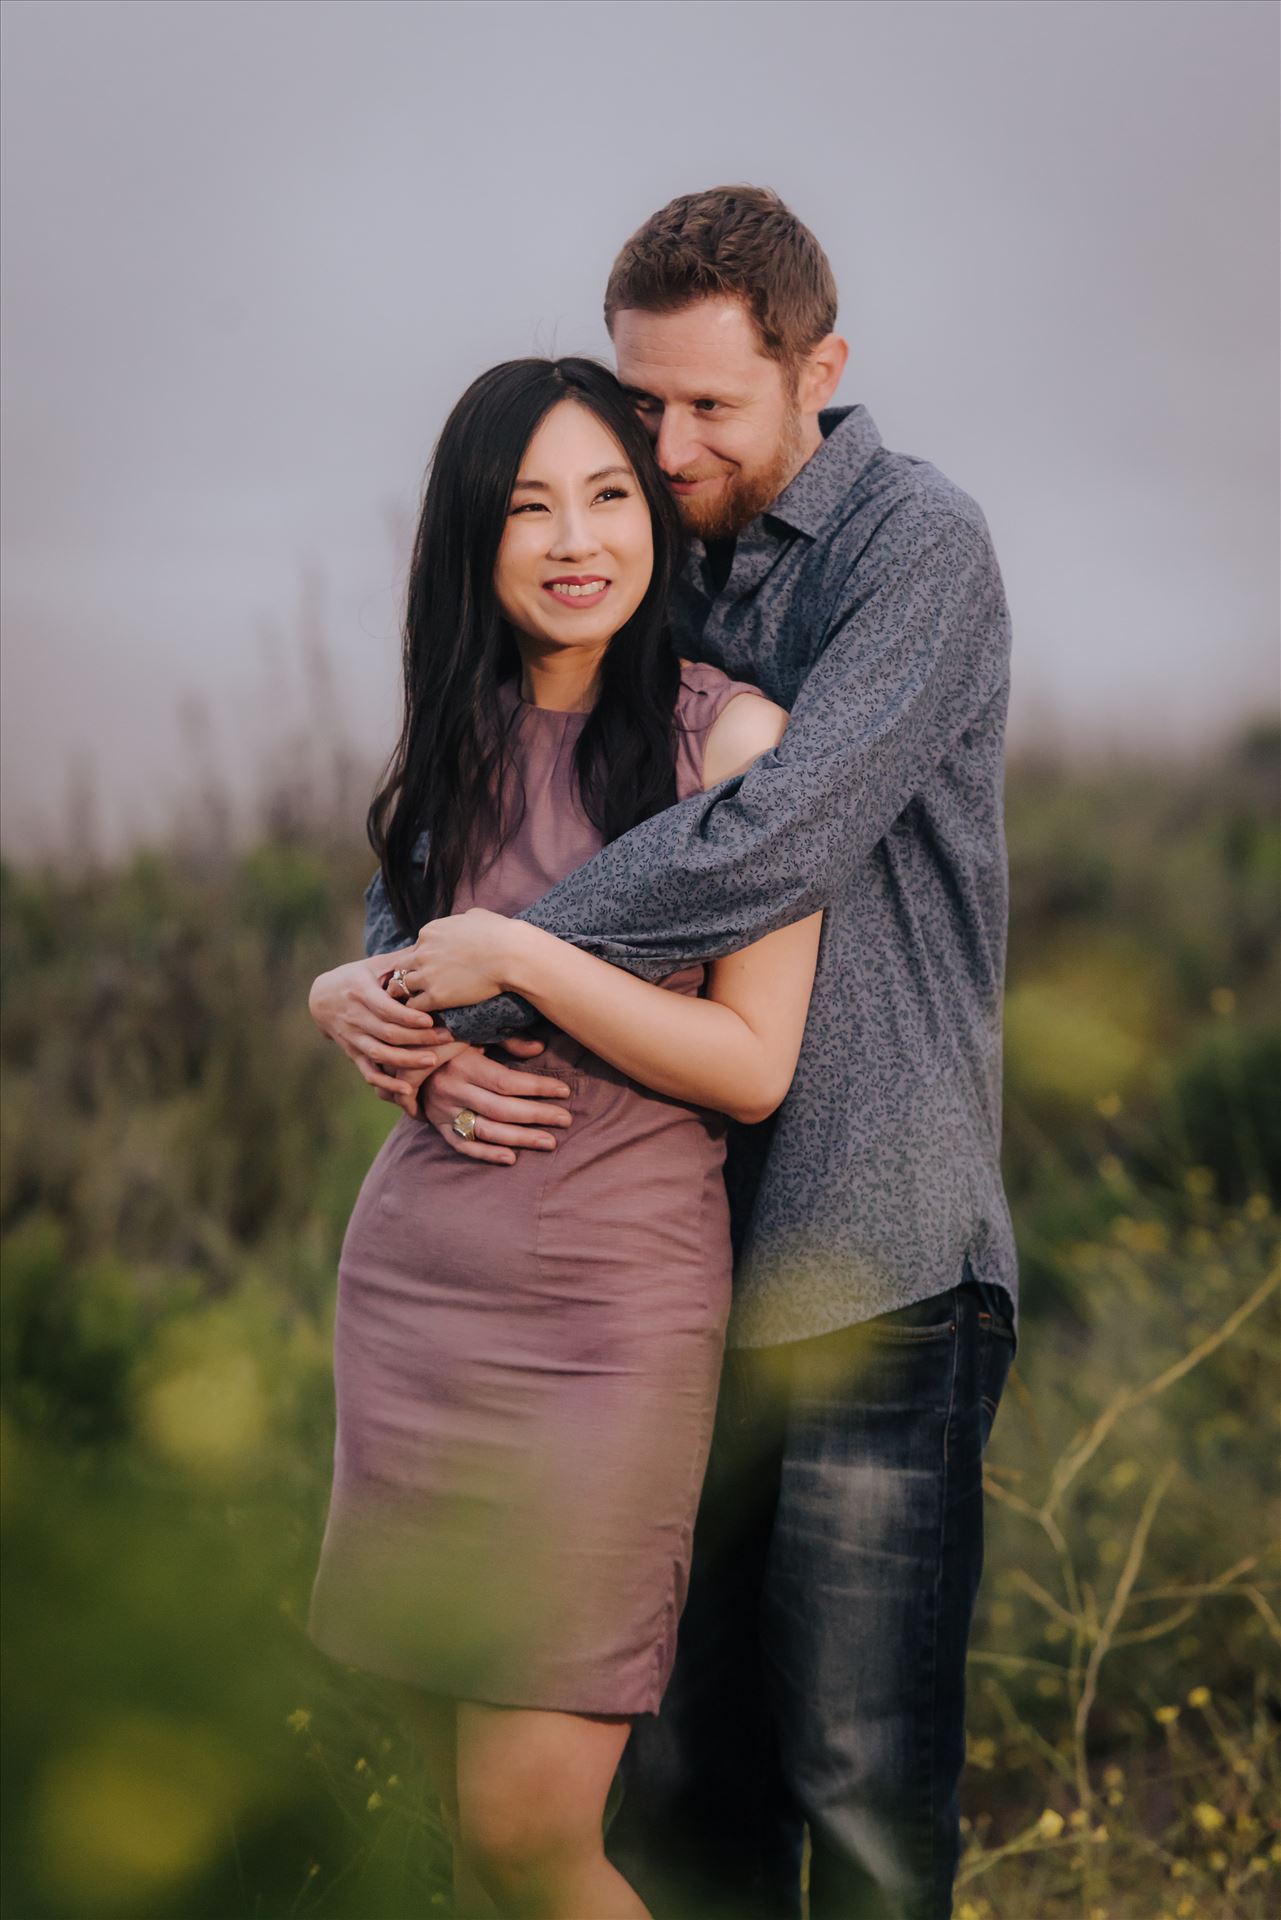 Carmen and Josh 60 - Montana de Oro Spooners Cove Engagement Photography Los Osos California.  Hidden Romance and Love of a couple by Sarah Williams